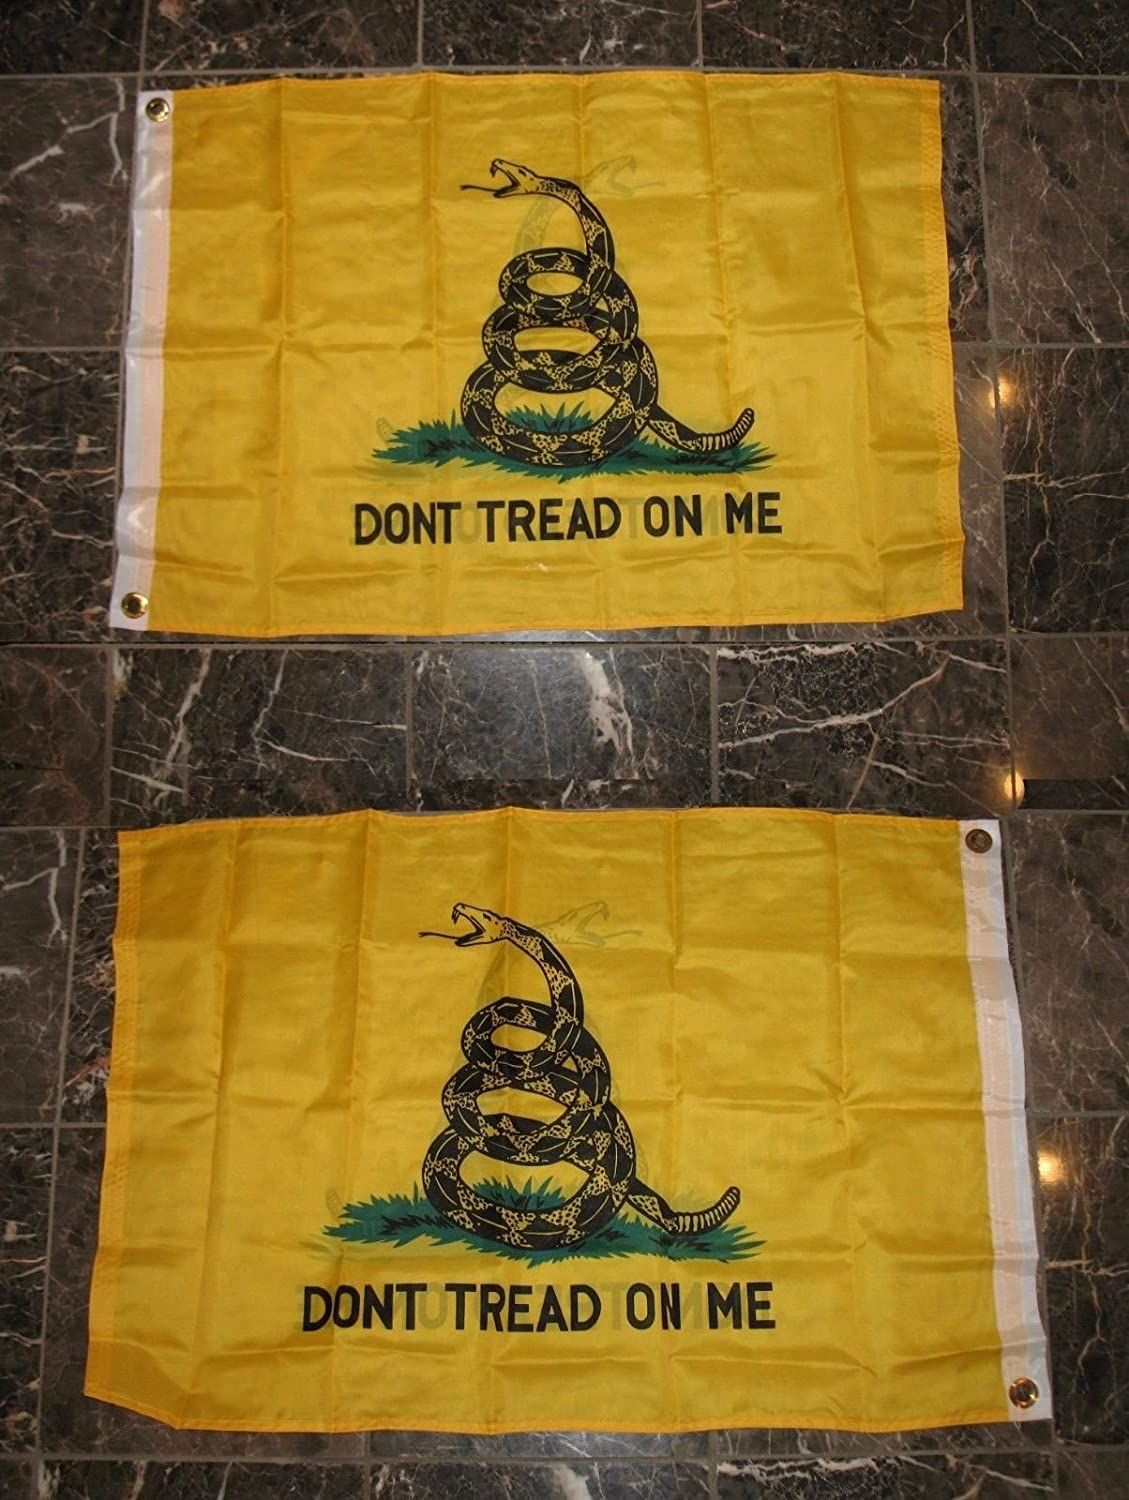 2x3 Gadsden Don't Tread On Me 2 Faced 2-ply Wind Resistant Flag 2'x3' Brass Grommets